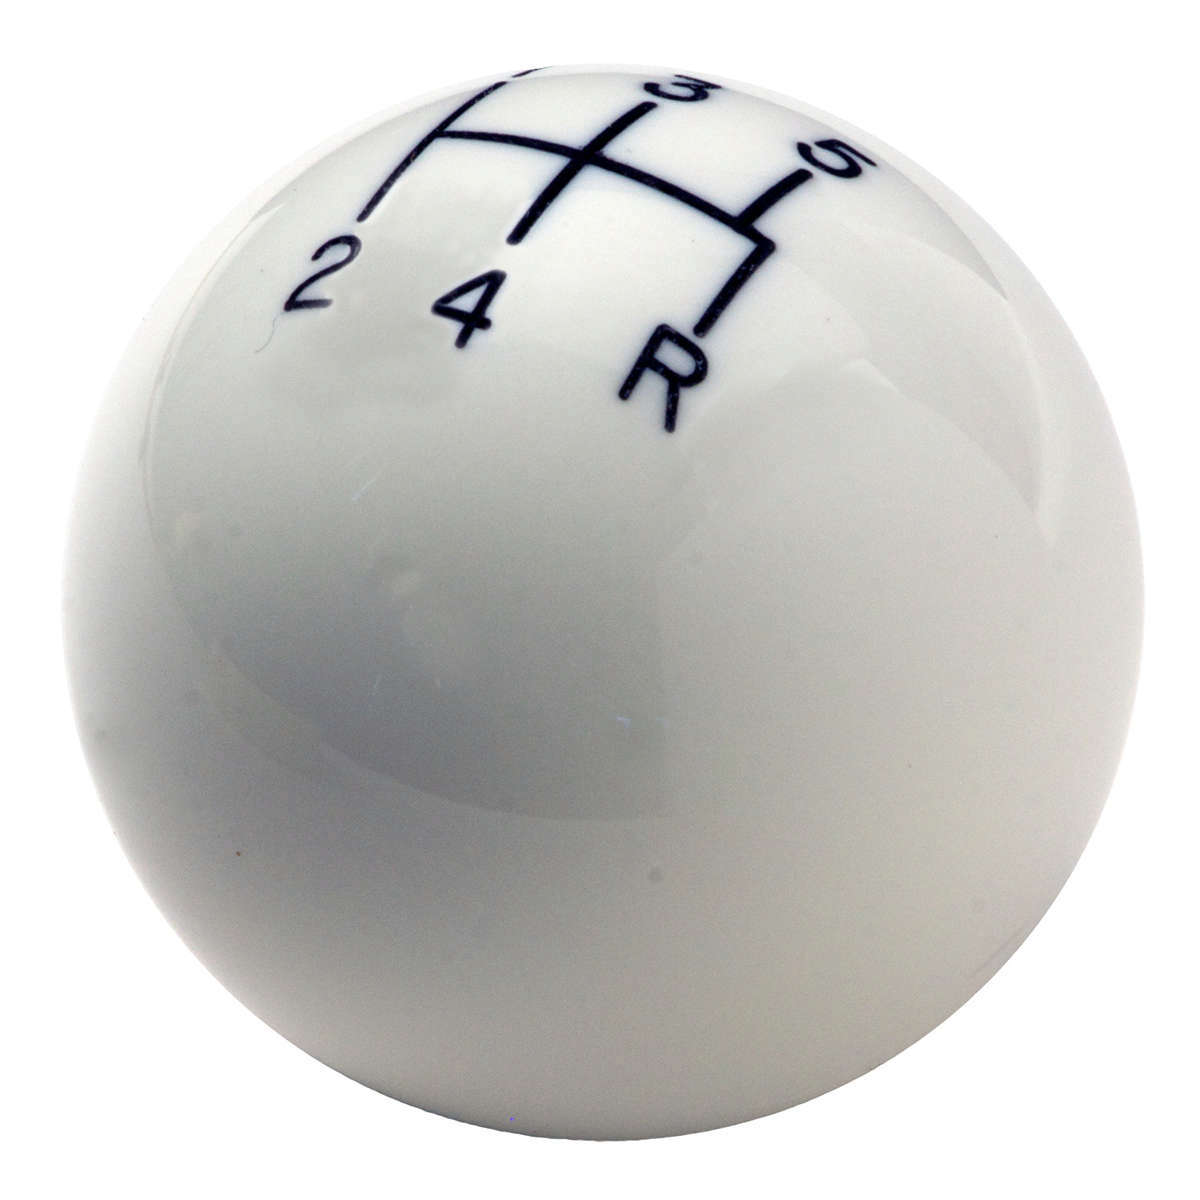 Hurst 163-0008 Shifter Knob, Classic, 3/8-16 in Thread, Composite, White, 5 Speed, Universal, Each